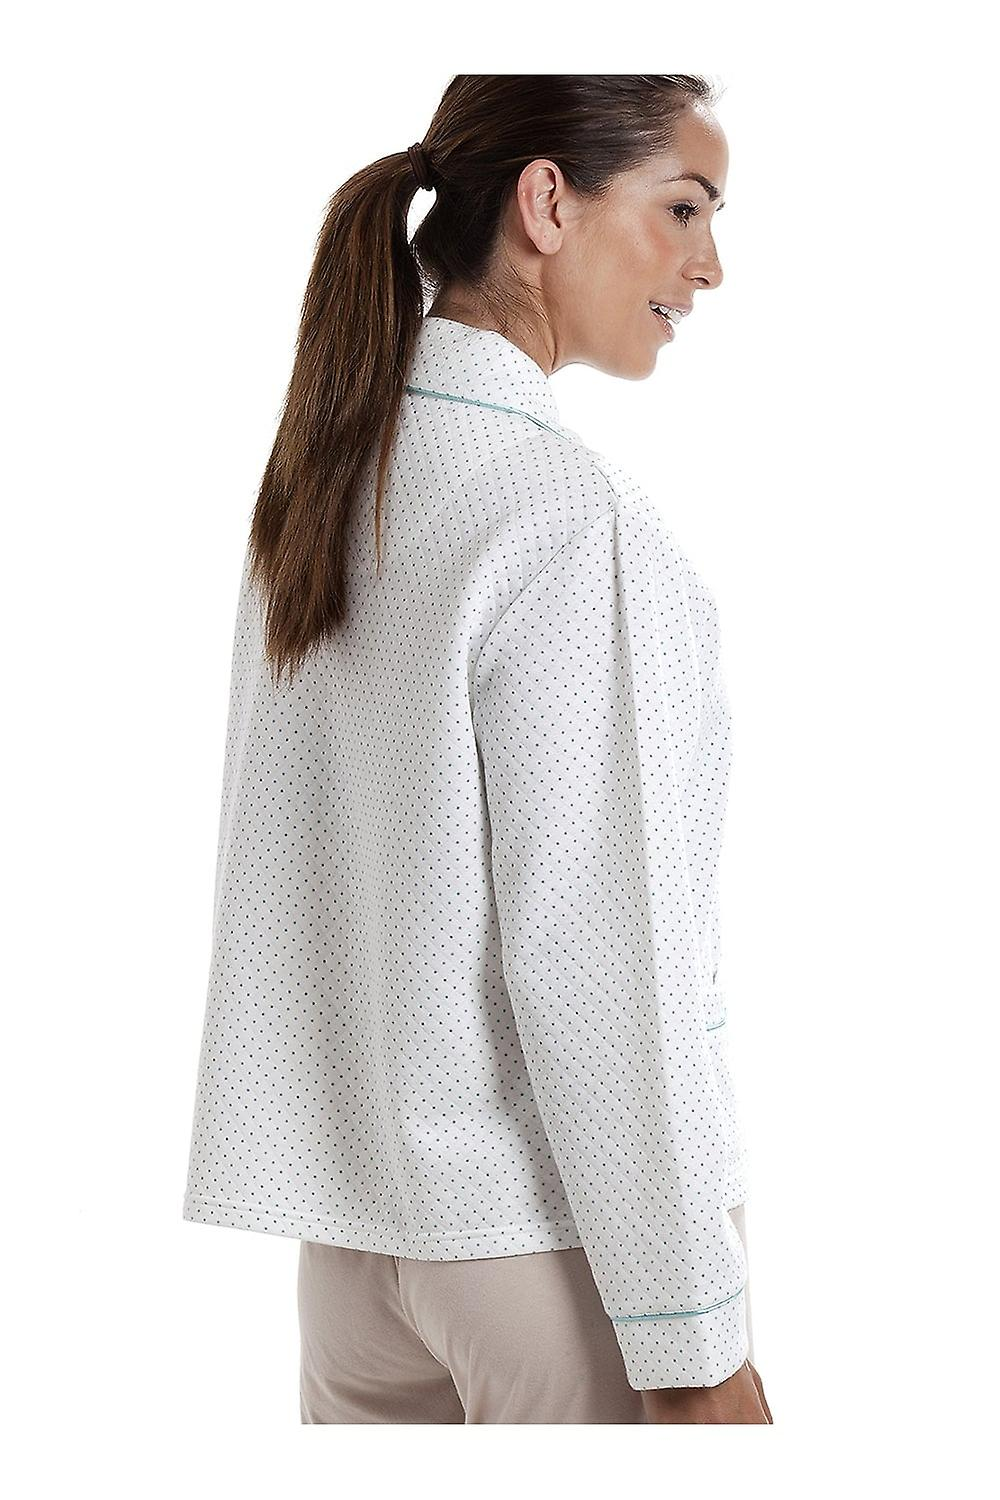 Camille Womens White Bed Jacket With A Blue Dot Print